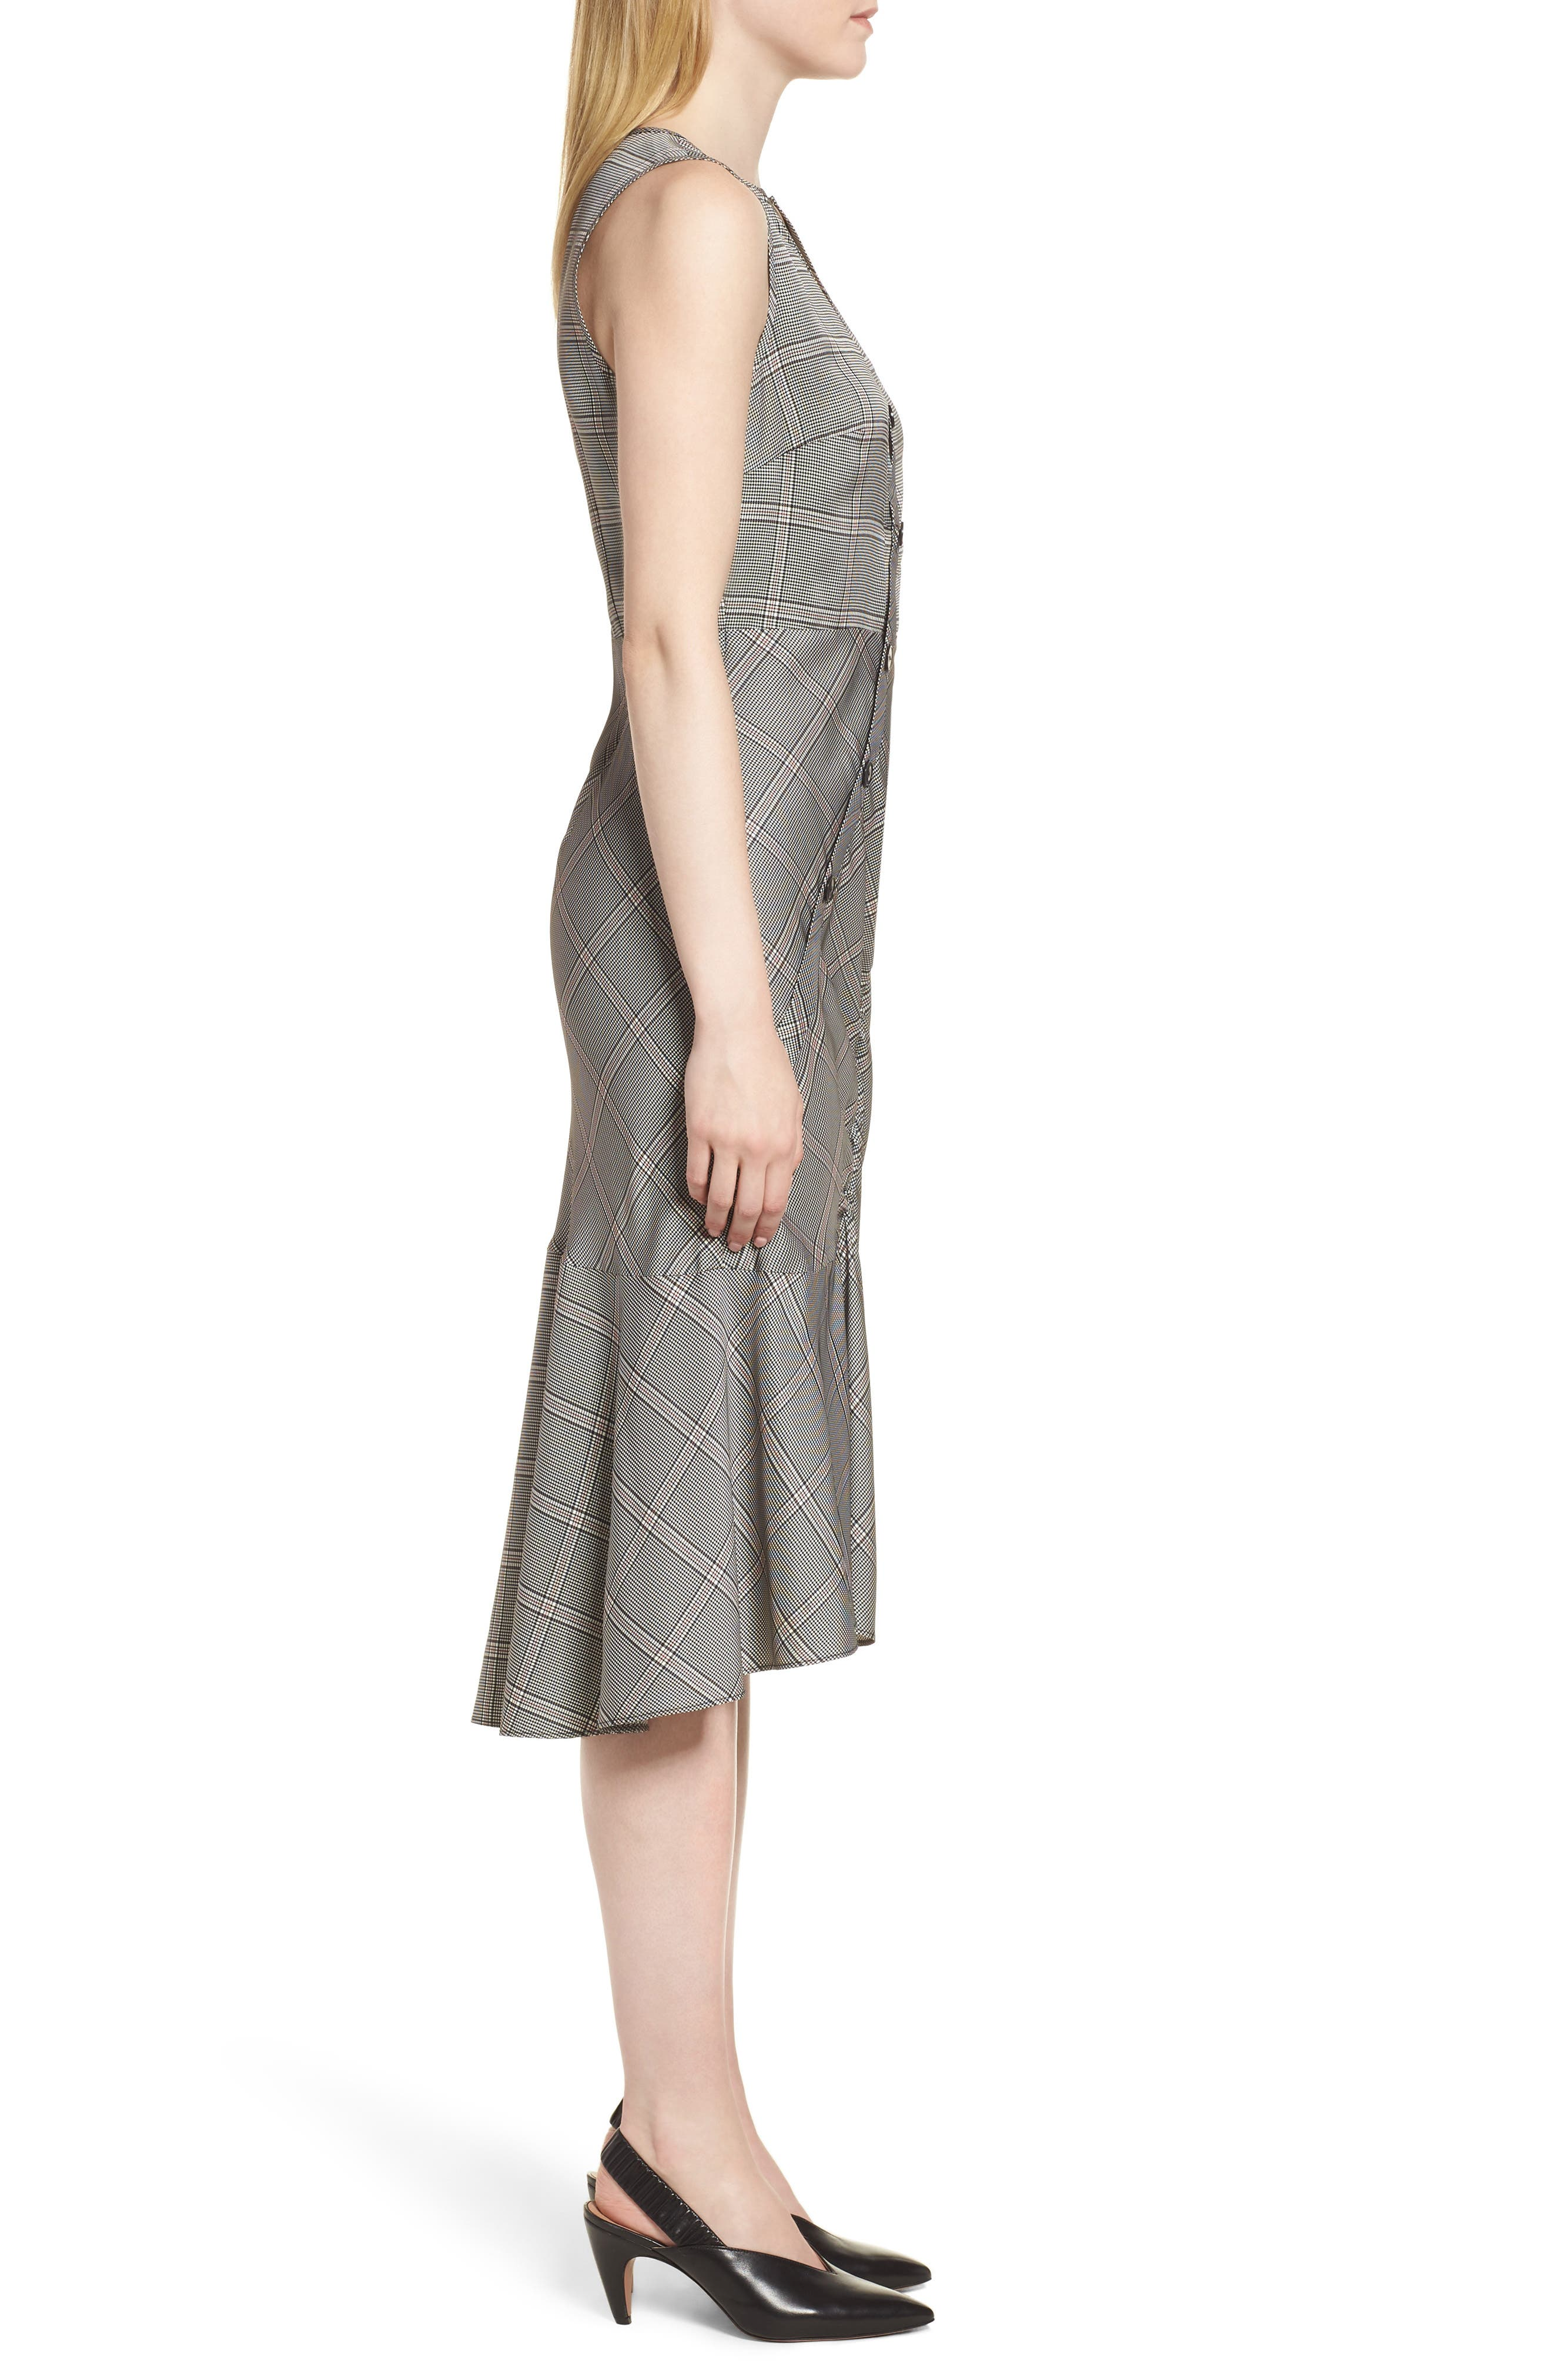 Seam Detail Sleeveless Check Dress,                             Alternate thumbnail 4, color,                             001